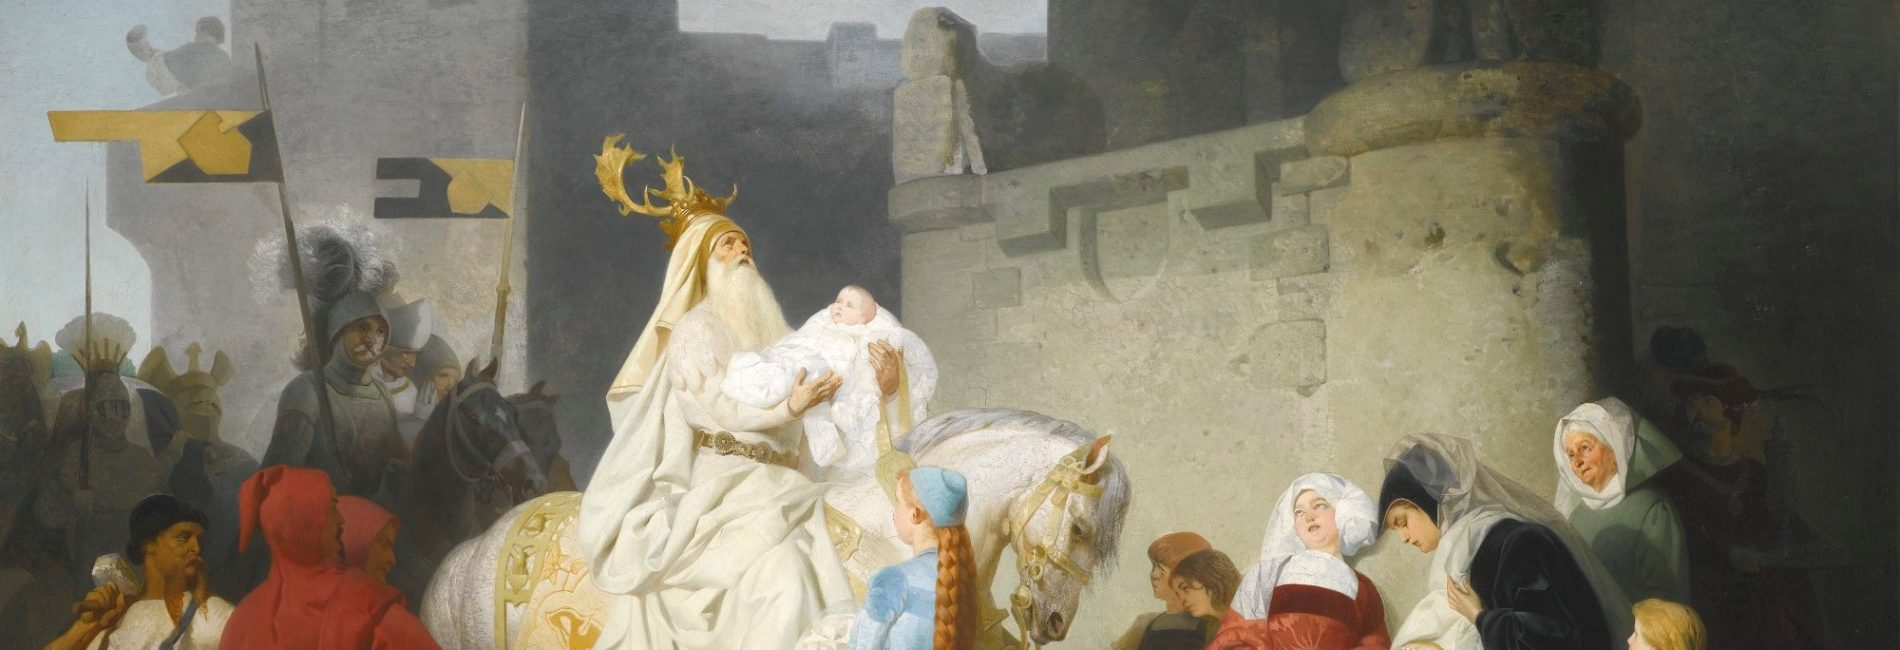 The Mother-Hero in Arthurian Fantasy